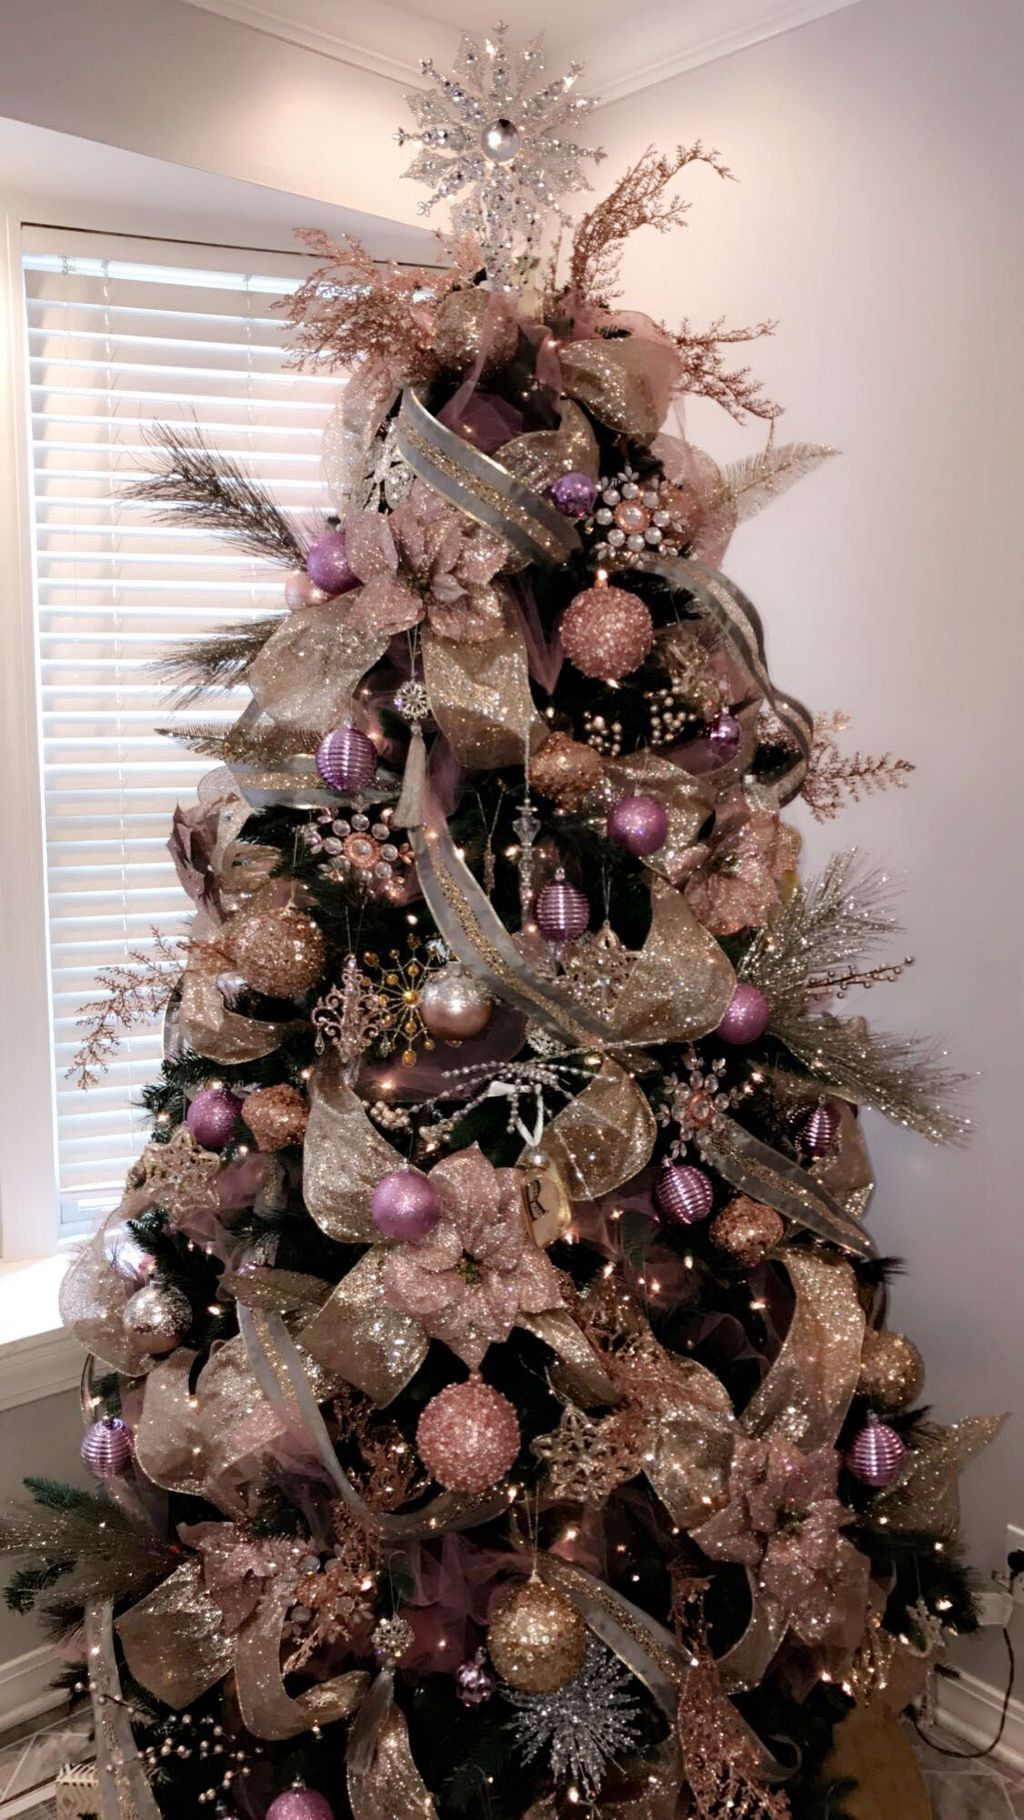 Dressed In Combination Of Shades Of Pink On This Christmas Tree Rose Gold Christmas Tree Amazing Christmas Trees Gold Christmas Decorations